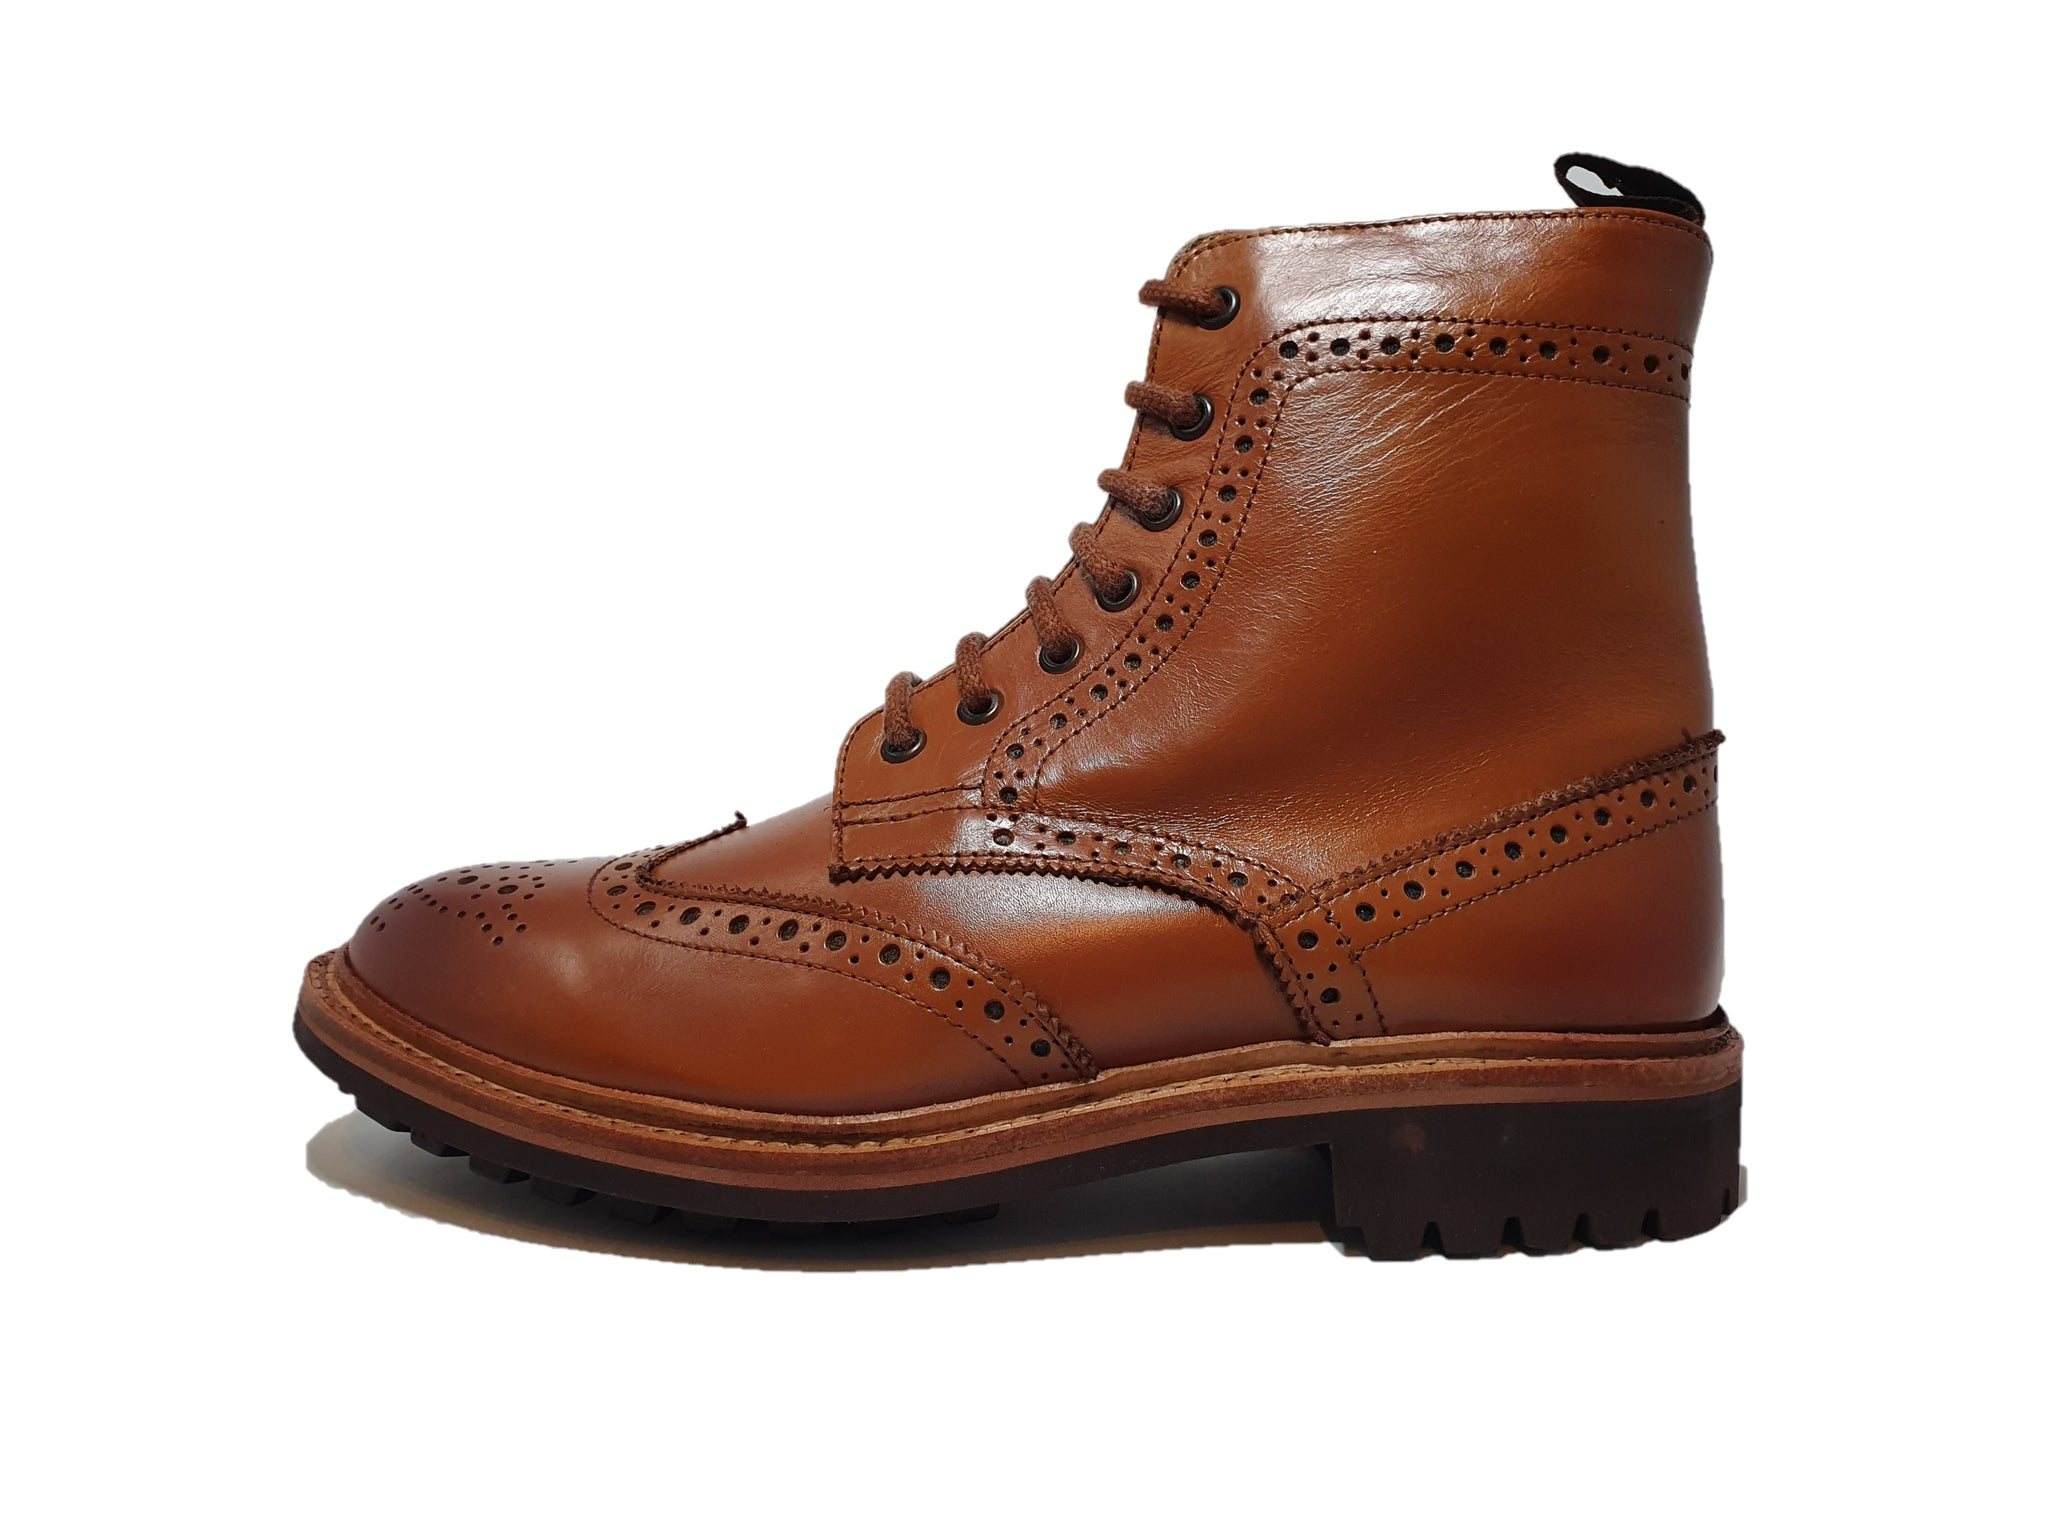 Catesby Brogue Boot